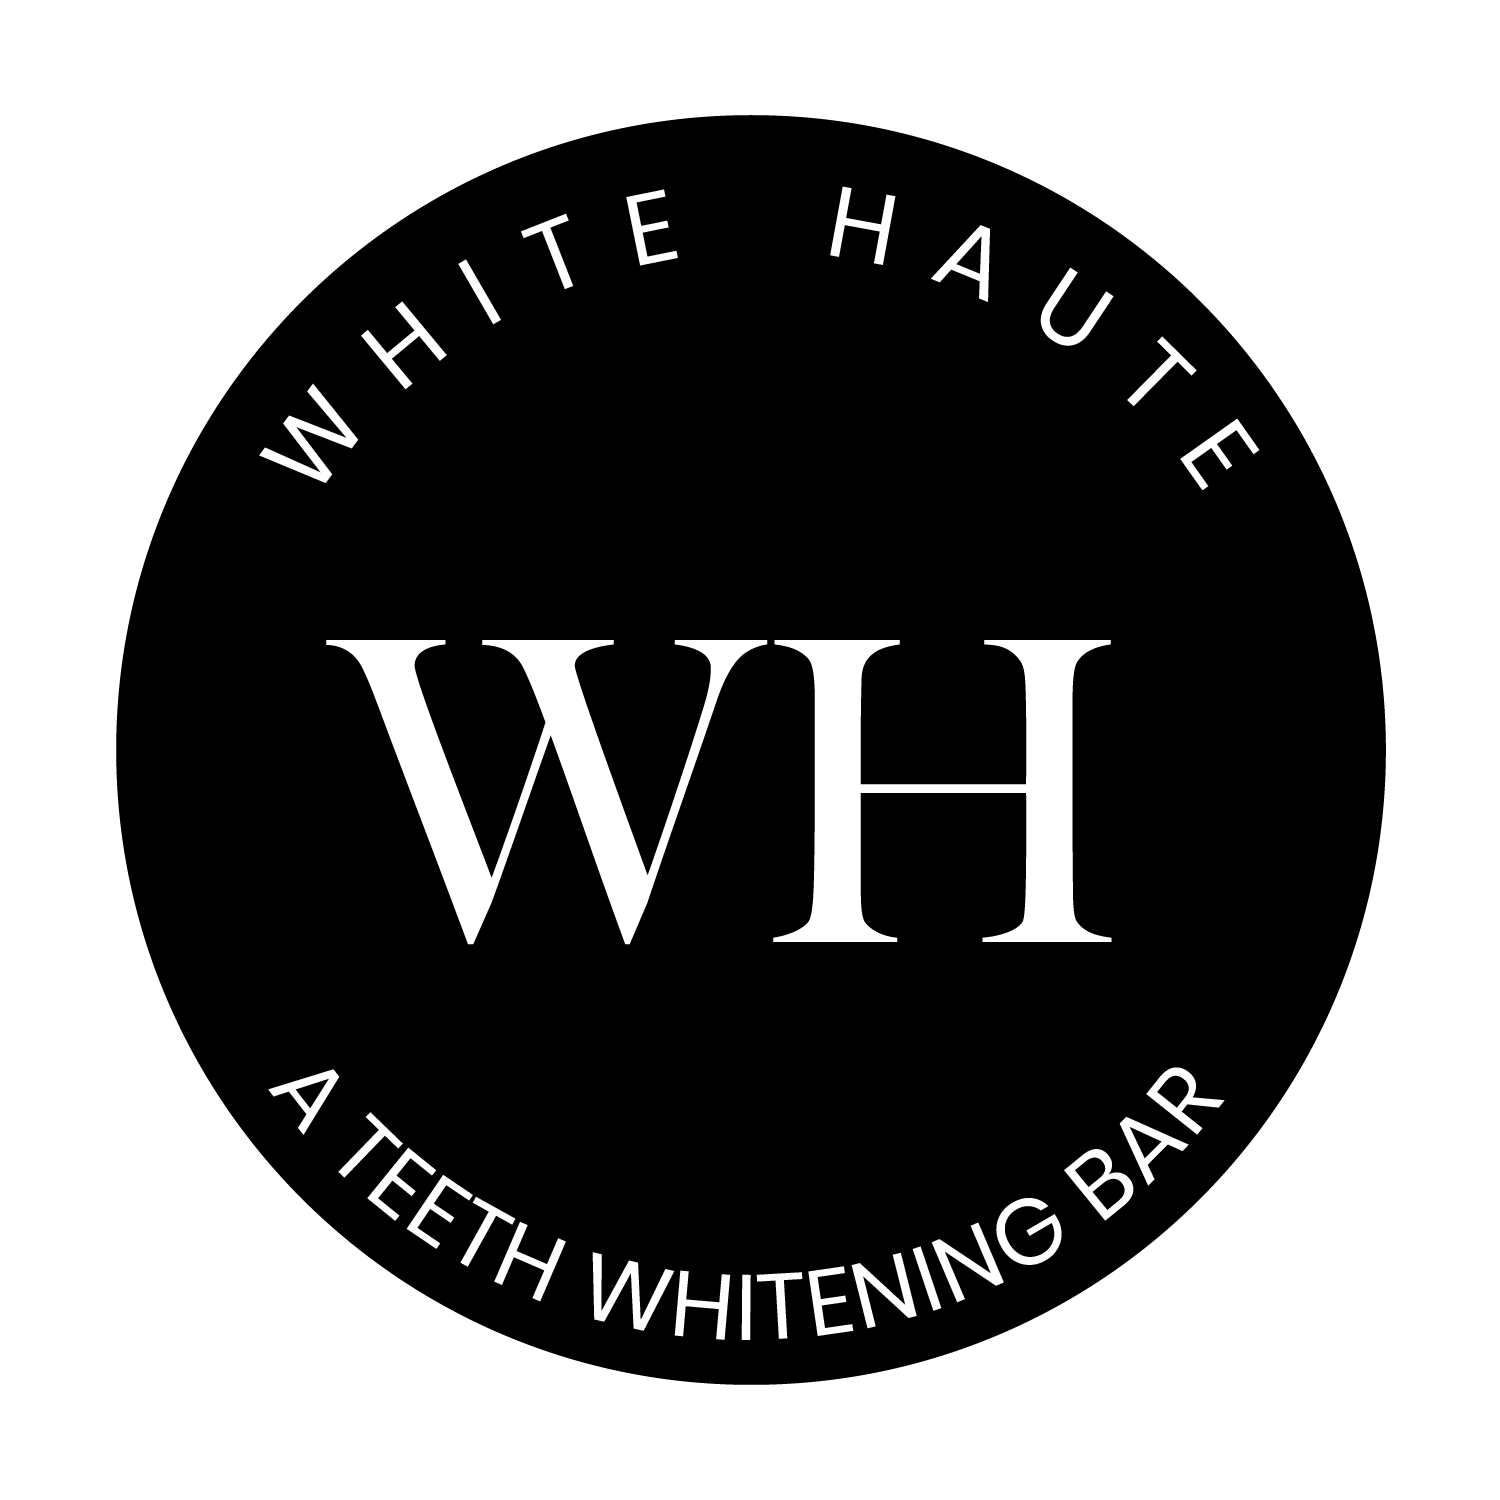 whitehauteteeth